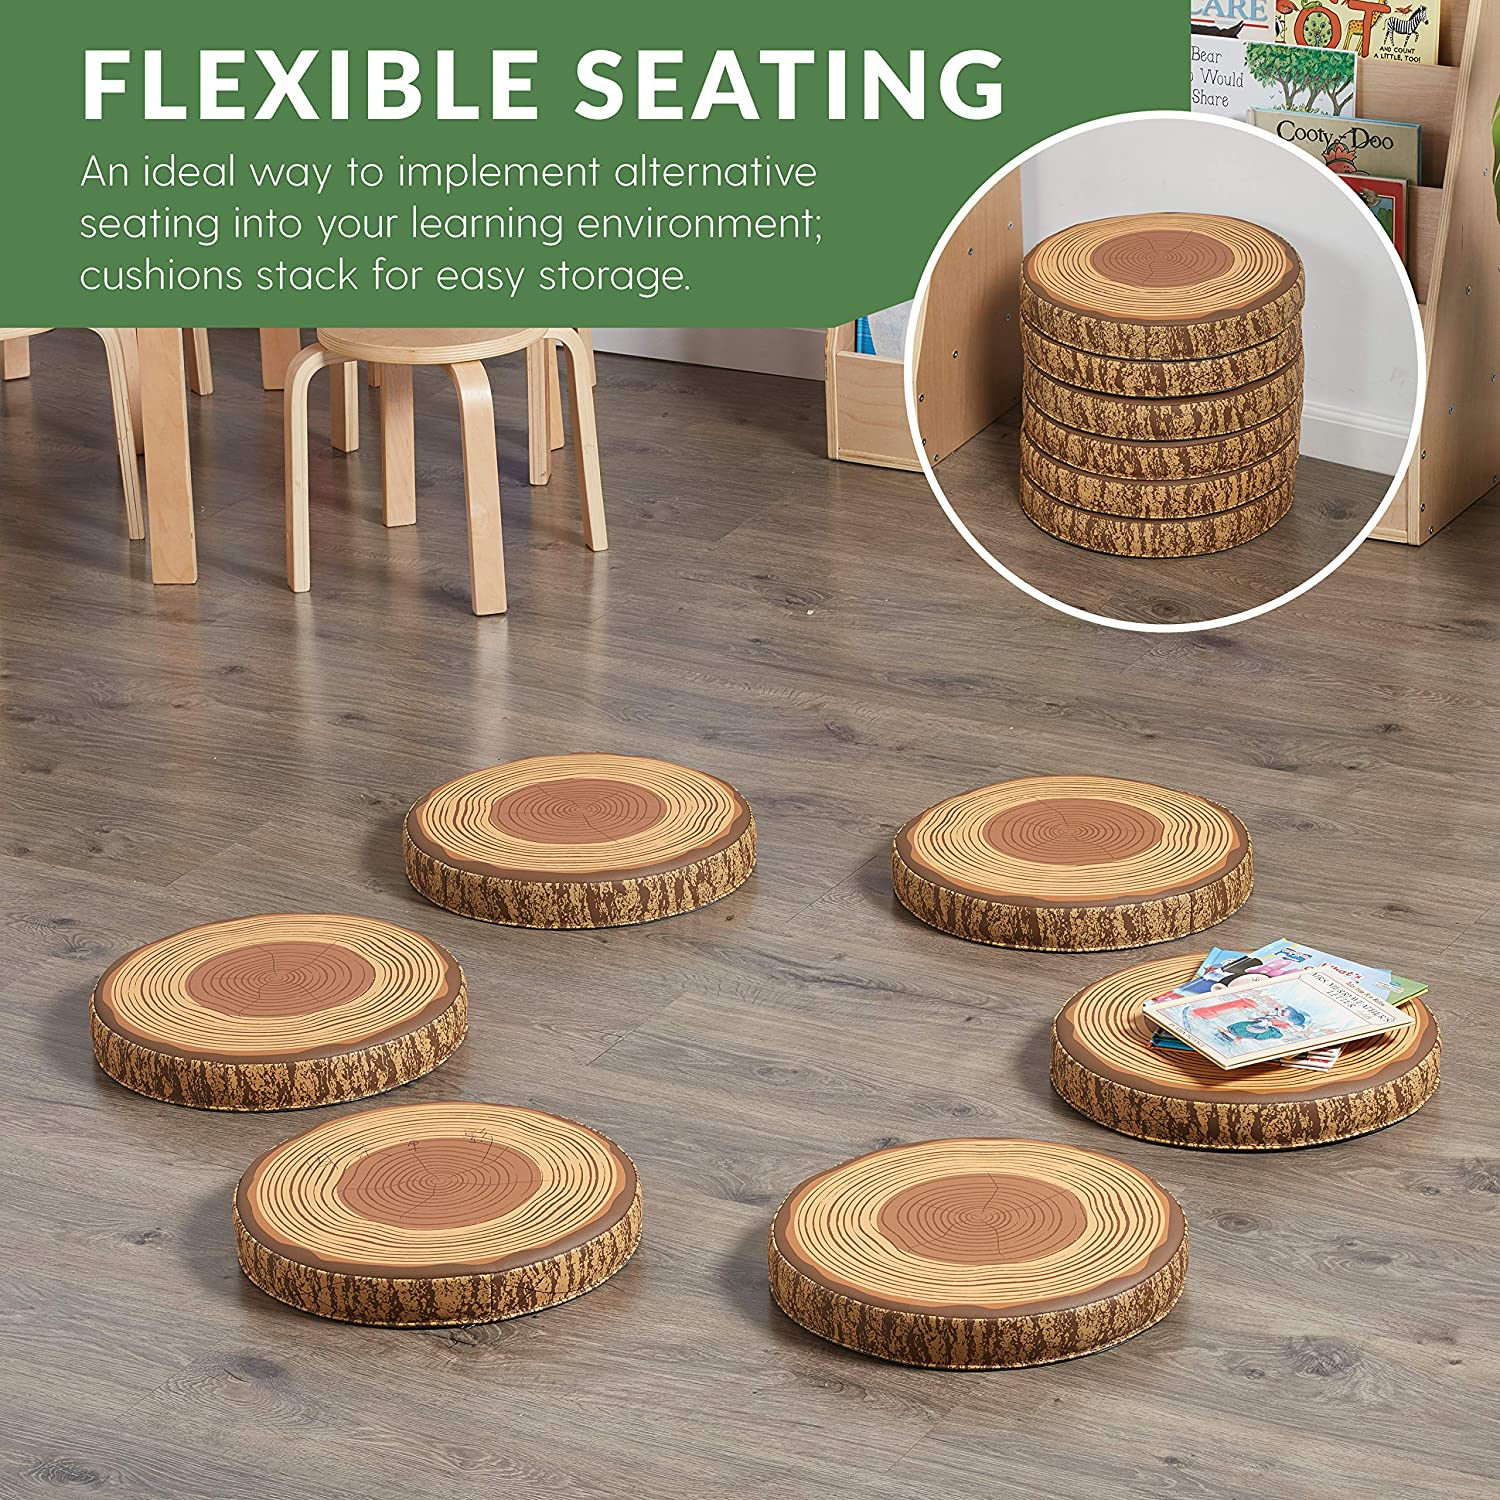 Flexible Alternative Classroom Seating for Kids ECR4Kids SoftZone Tree Floor Cushions 6-Pack 1.75 inch Thick Deluxe Foam Seat